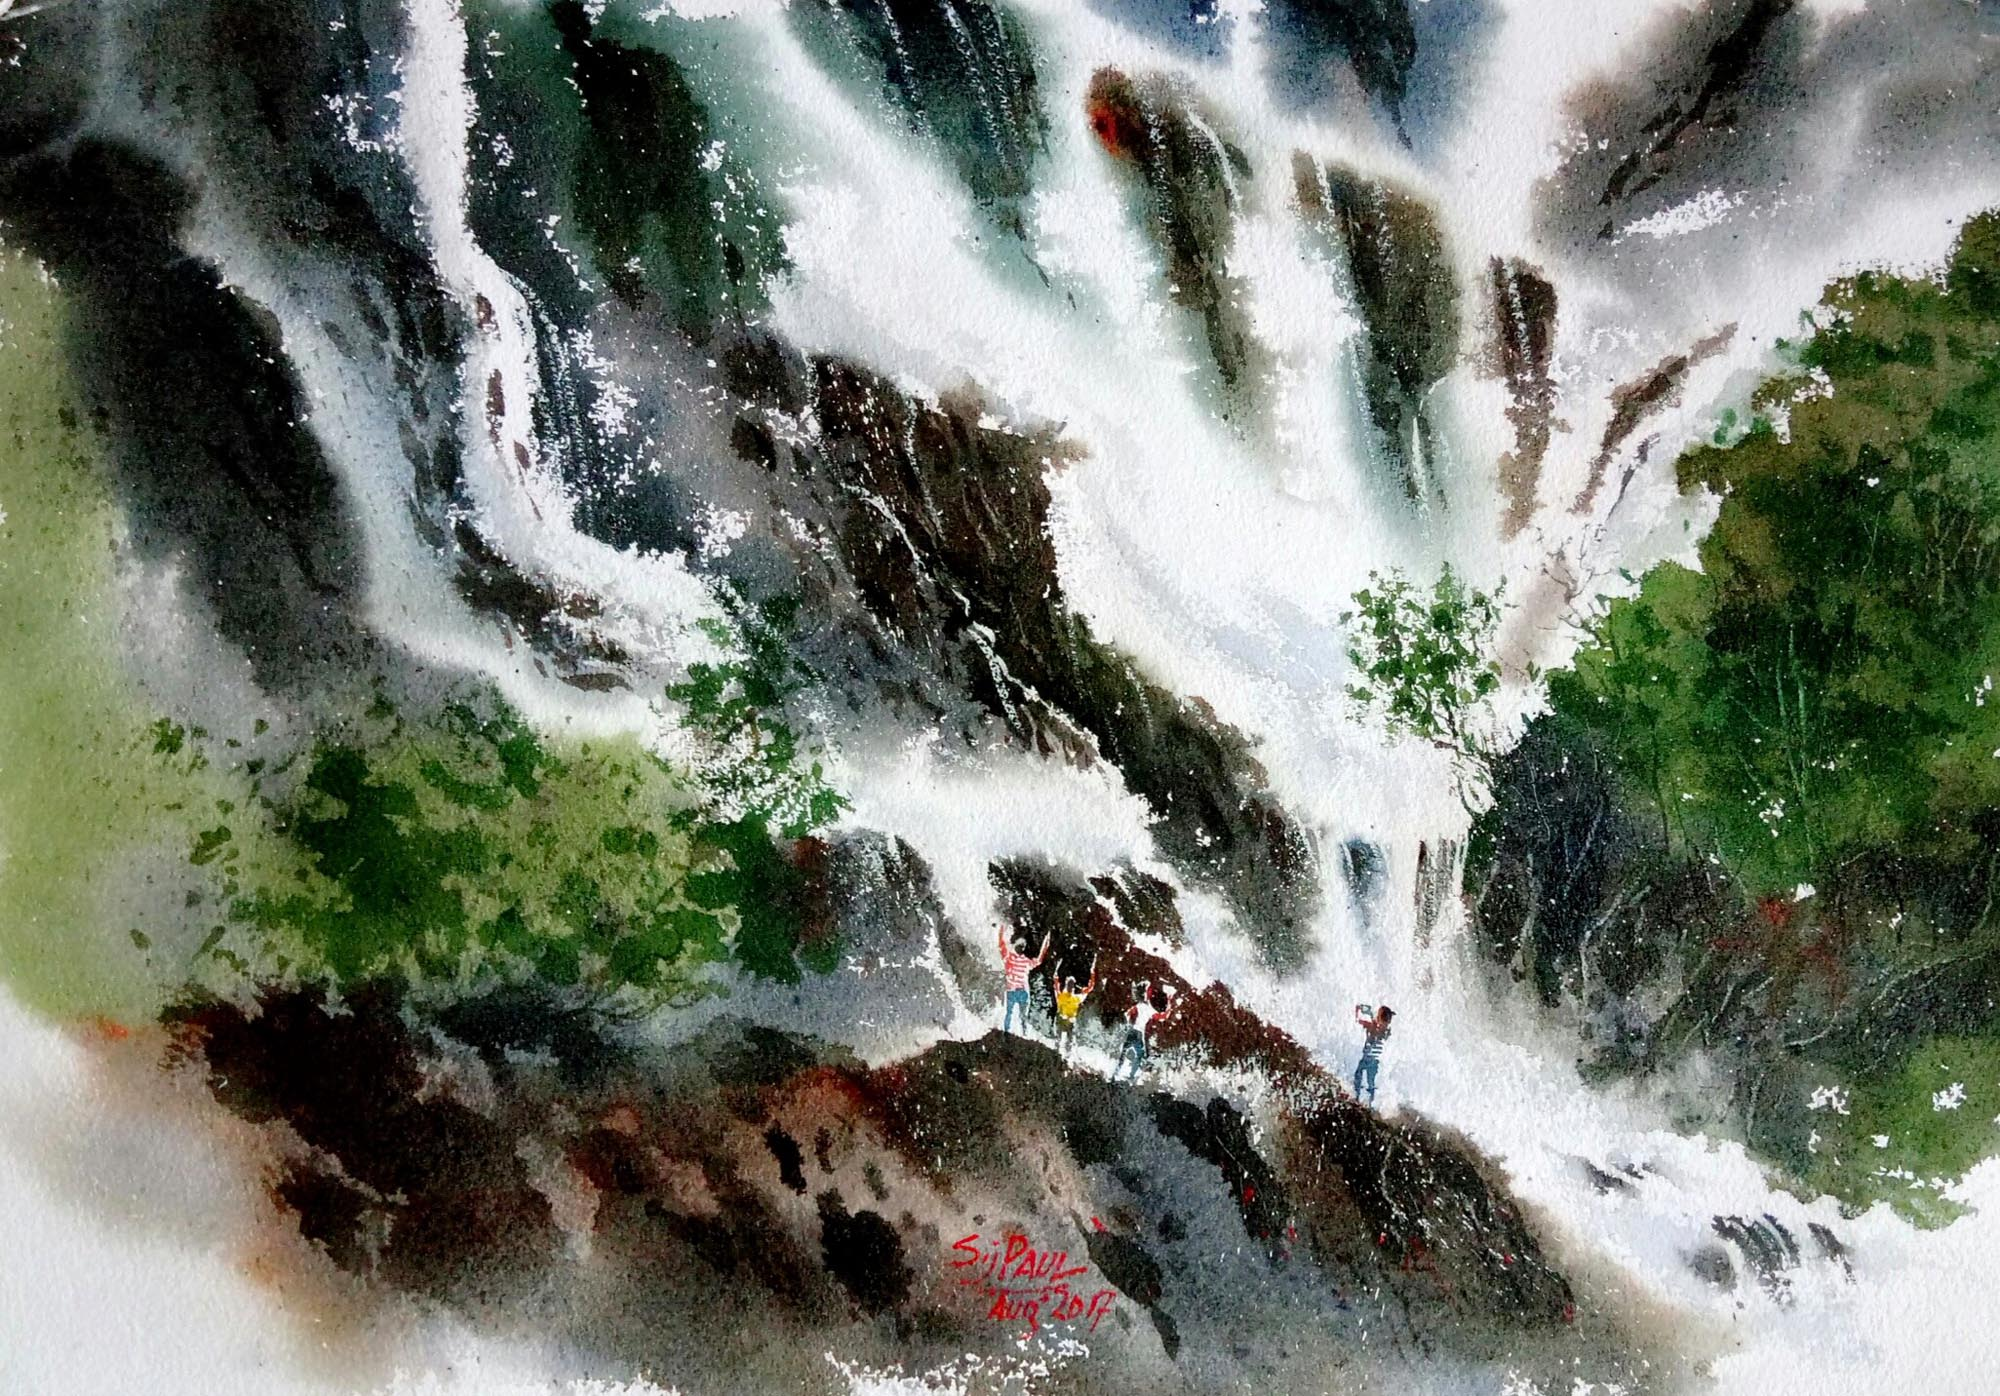 Waterfall Painting In Watercolor by Subhajit Paul